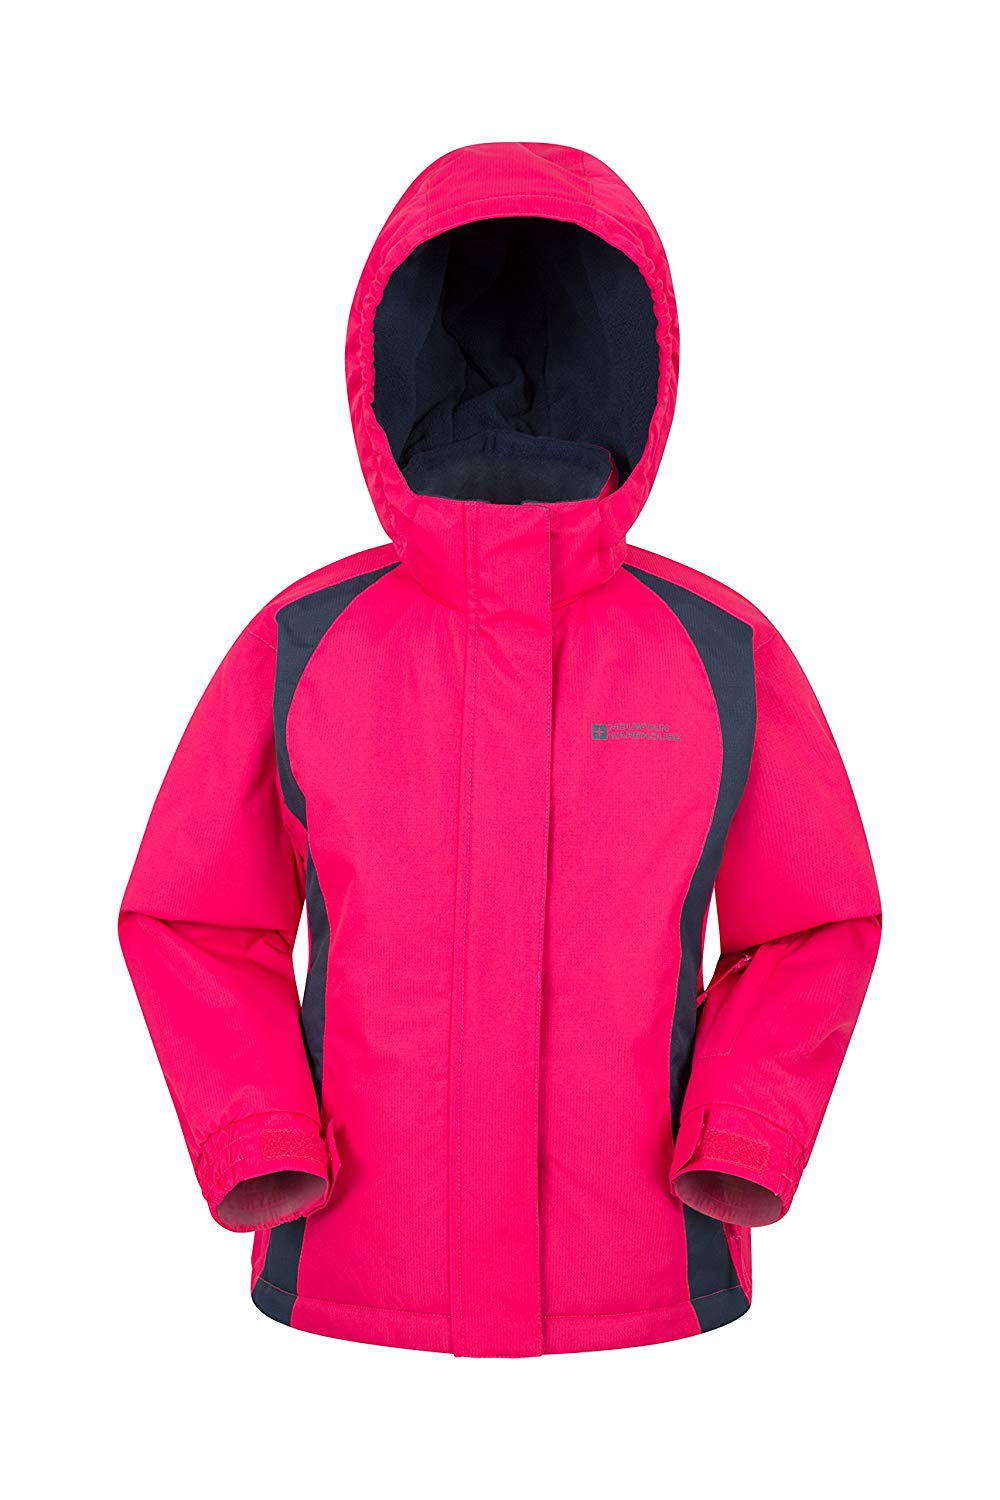 Honey Girls Ski Jacket from Mountain Warehouse - Under $100